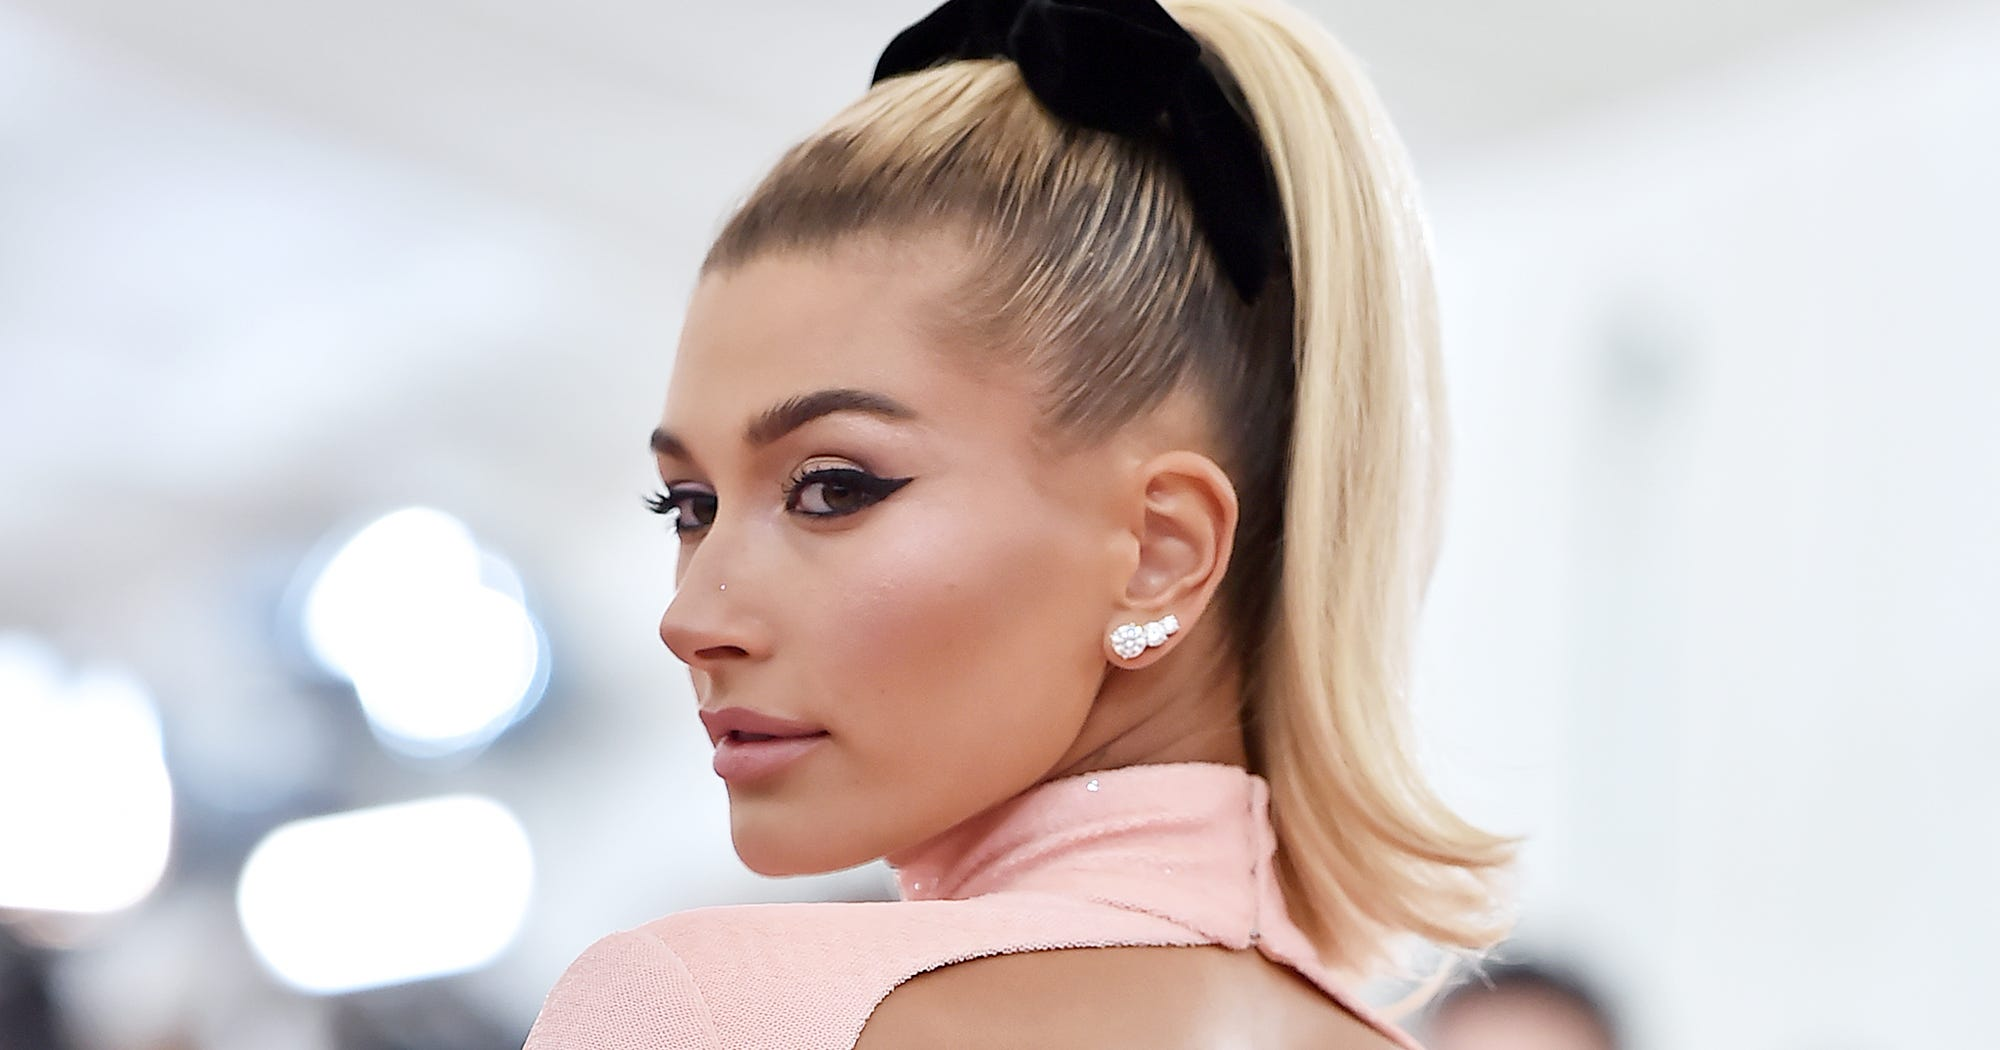 Hailey Bieber Has Over 19 Tattoos — But You've Probably Never Noticed